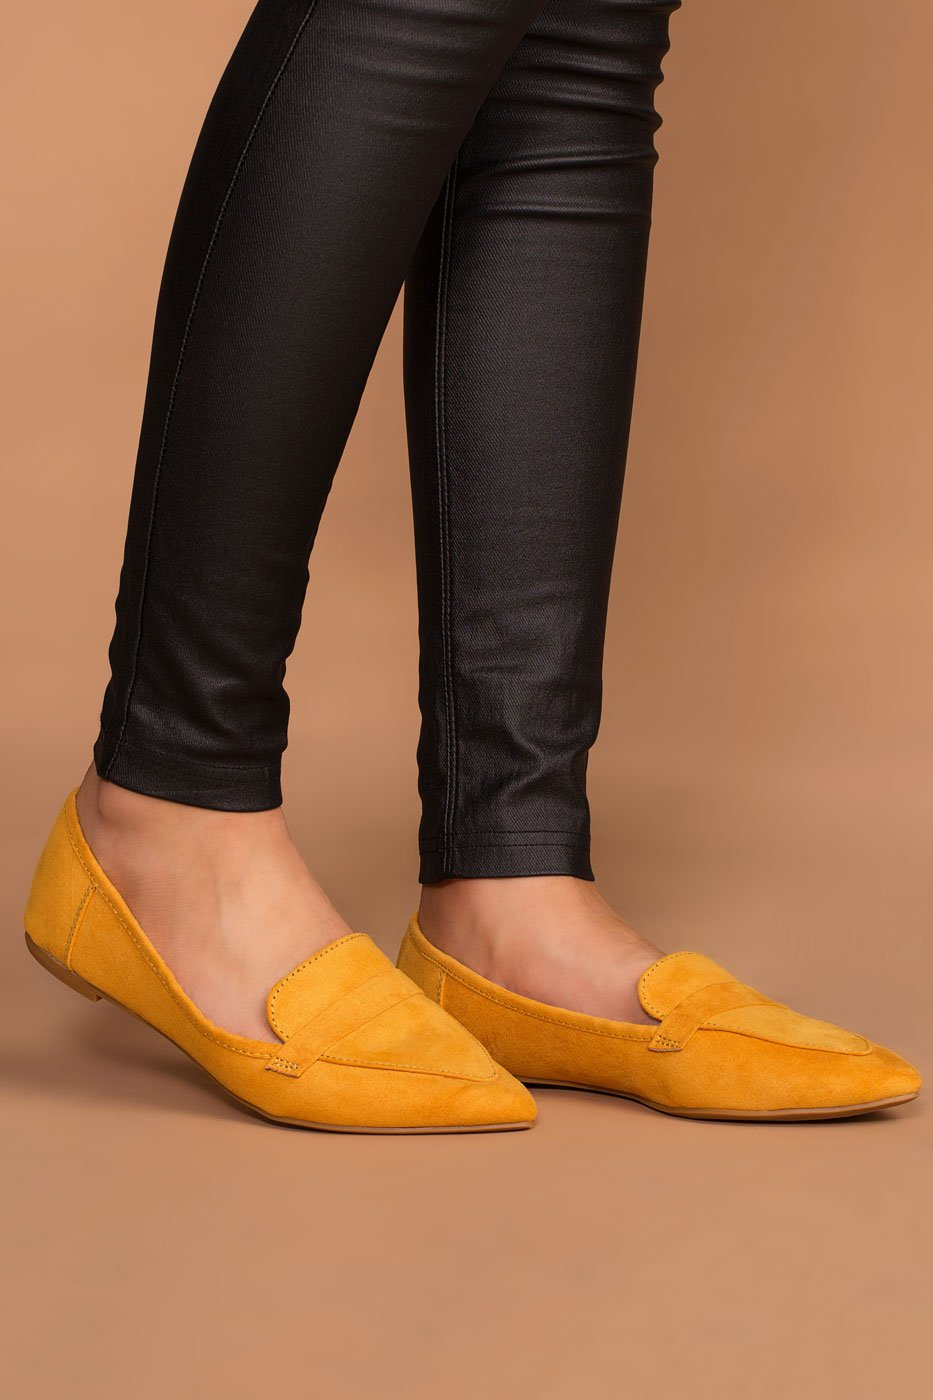 Shoes - Amélie Pointed Loafers - Marigold